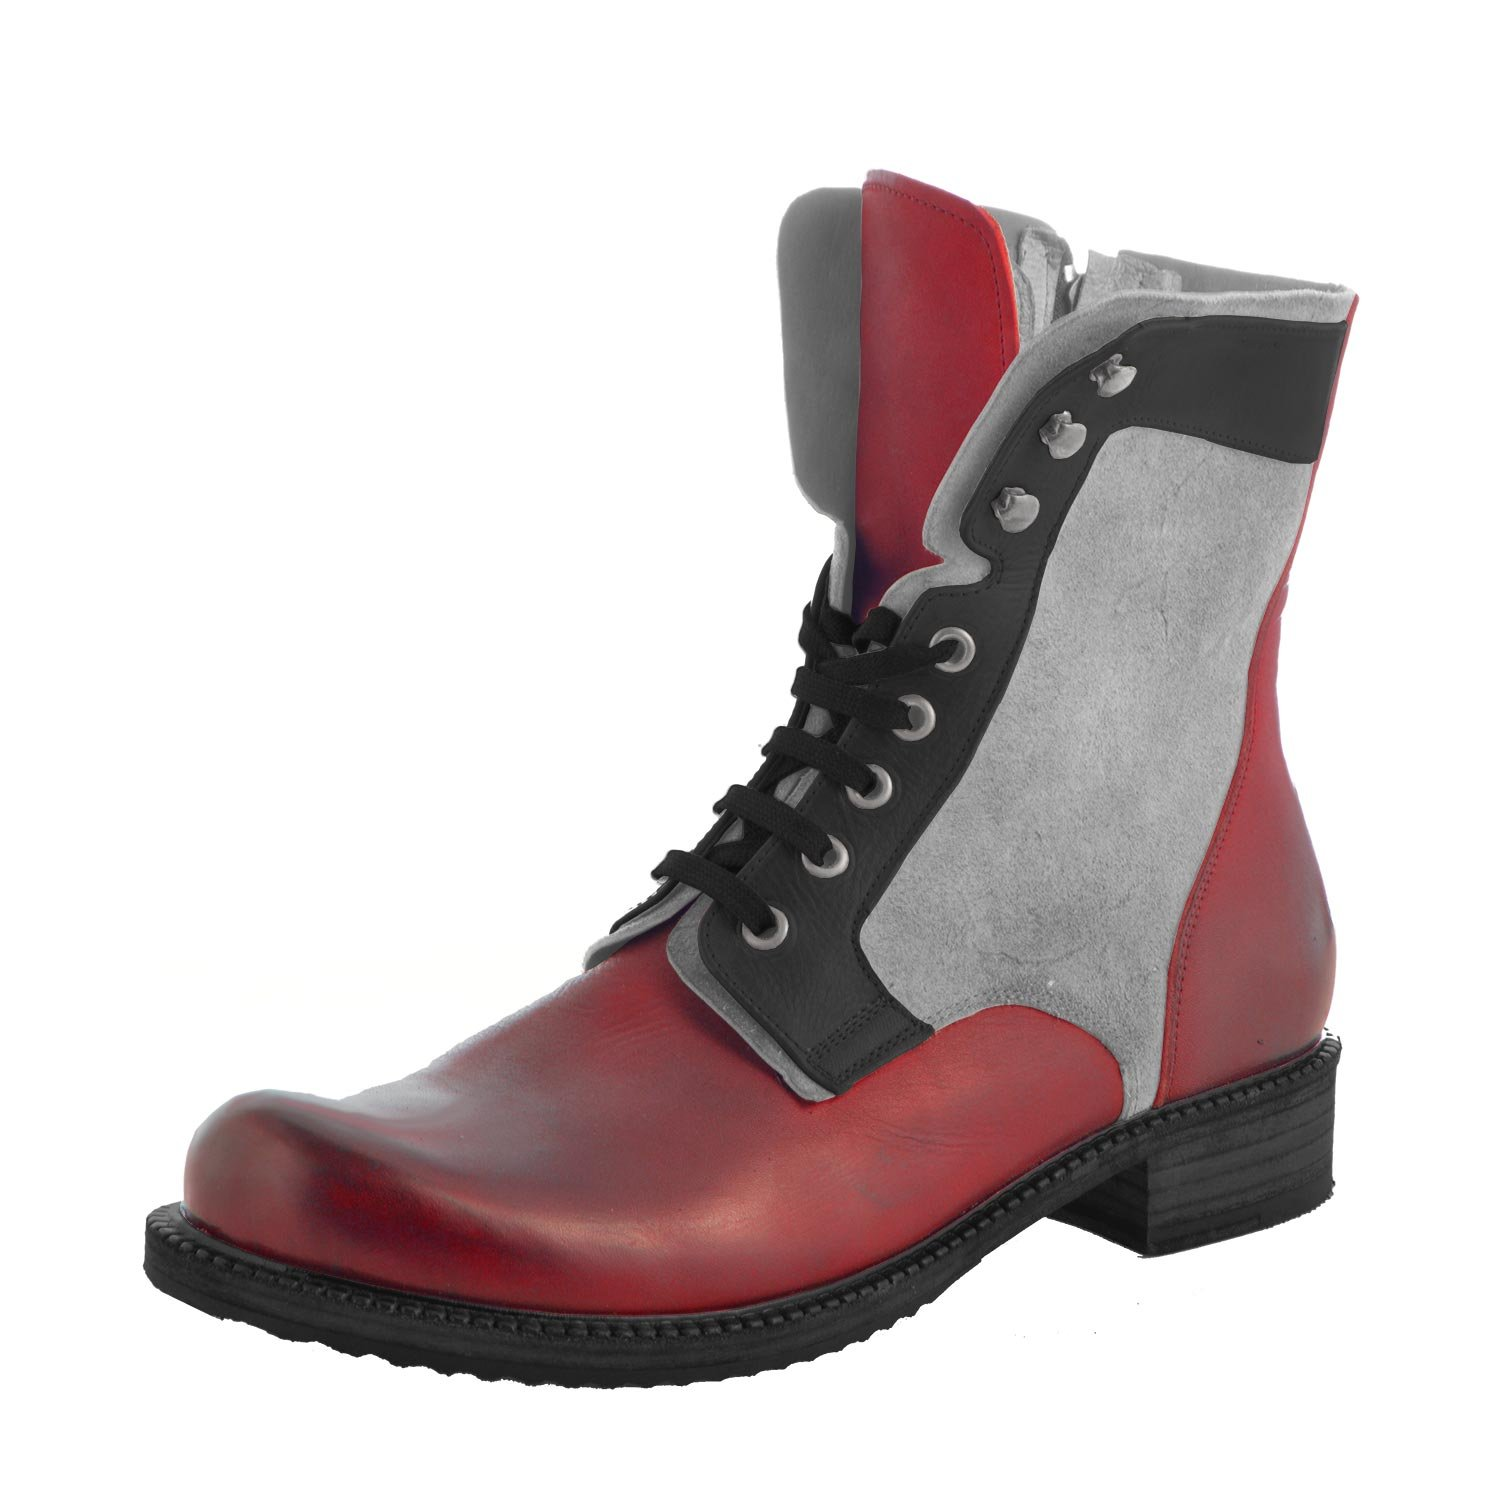 Genuine Leather and Suede High Top Men's Boots Red/Black/Gray - Badlands By Kristoff